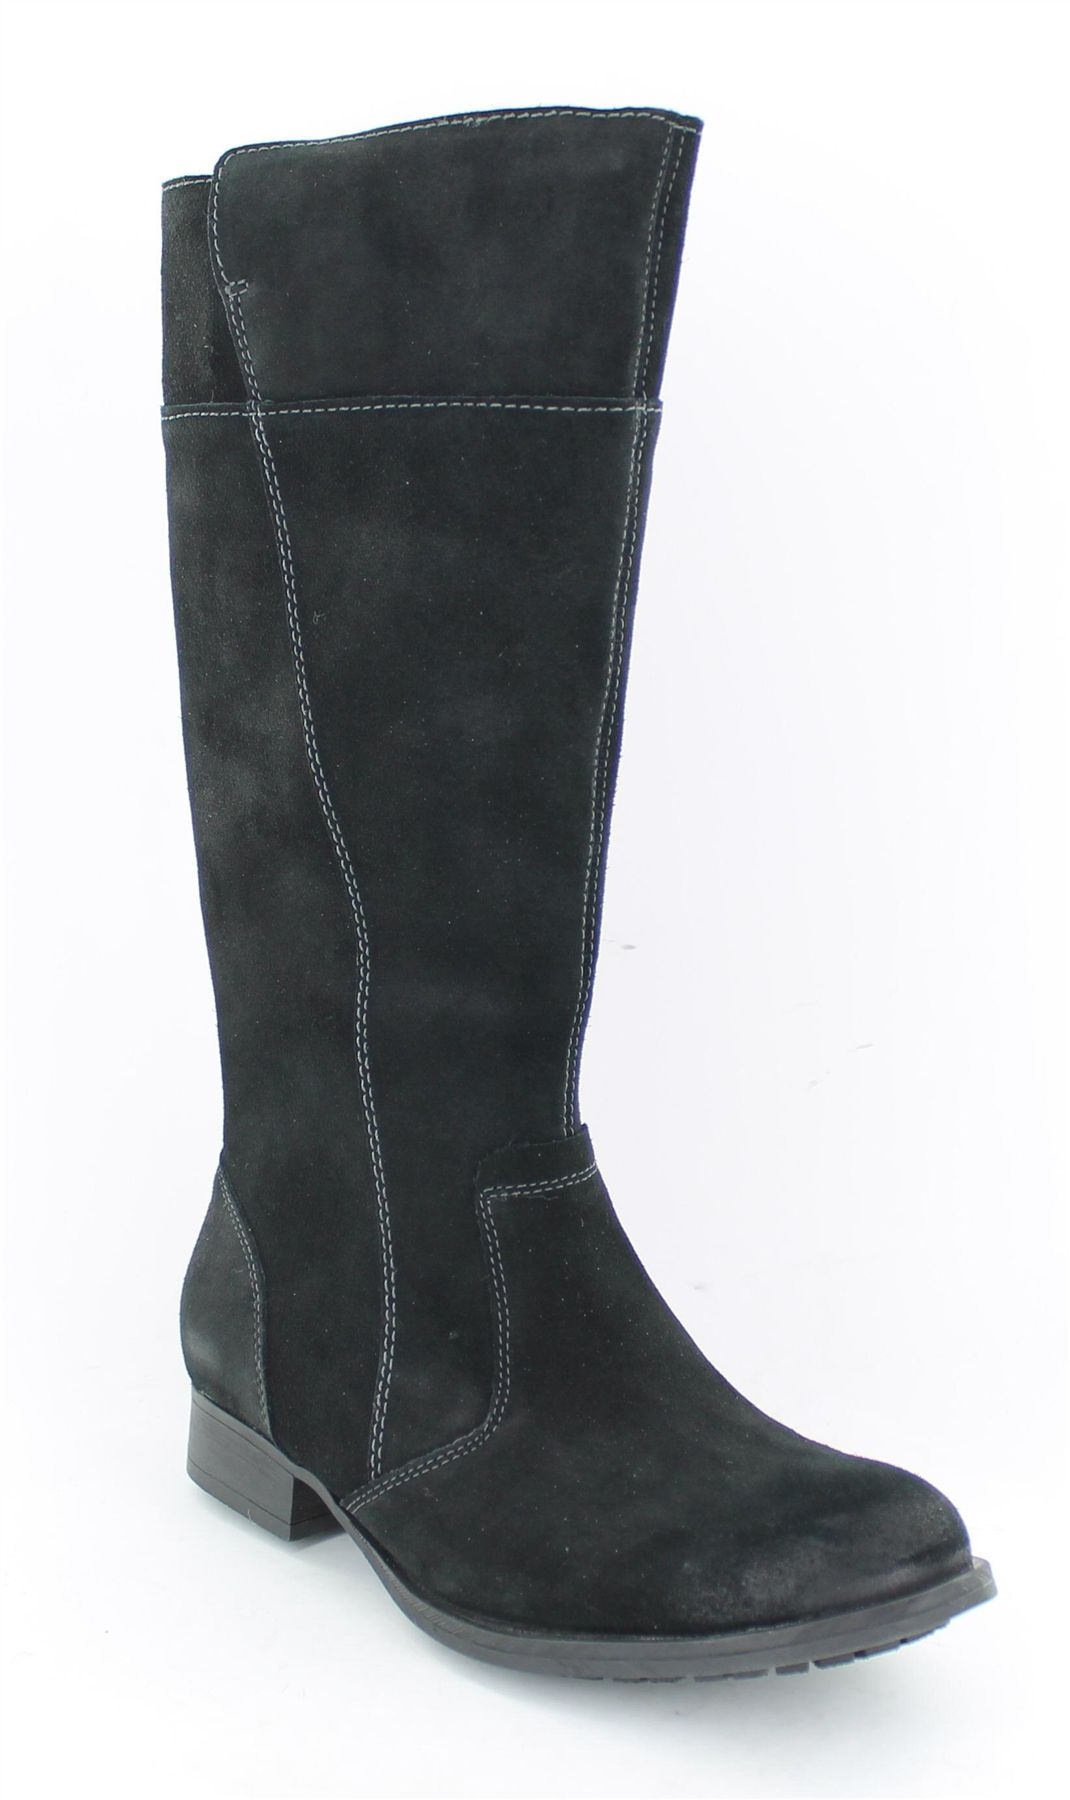 Clarks Boots. Discover Clarks boots sale for ankle boots, mid-calf boots and long boots in a mix of colours and materials. Shop by category: Womens boots | Womens GTX® Styles | Womens Desert Boots | Mens boots | Mens GTX® Styles | Mens Desert Boots.